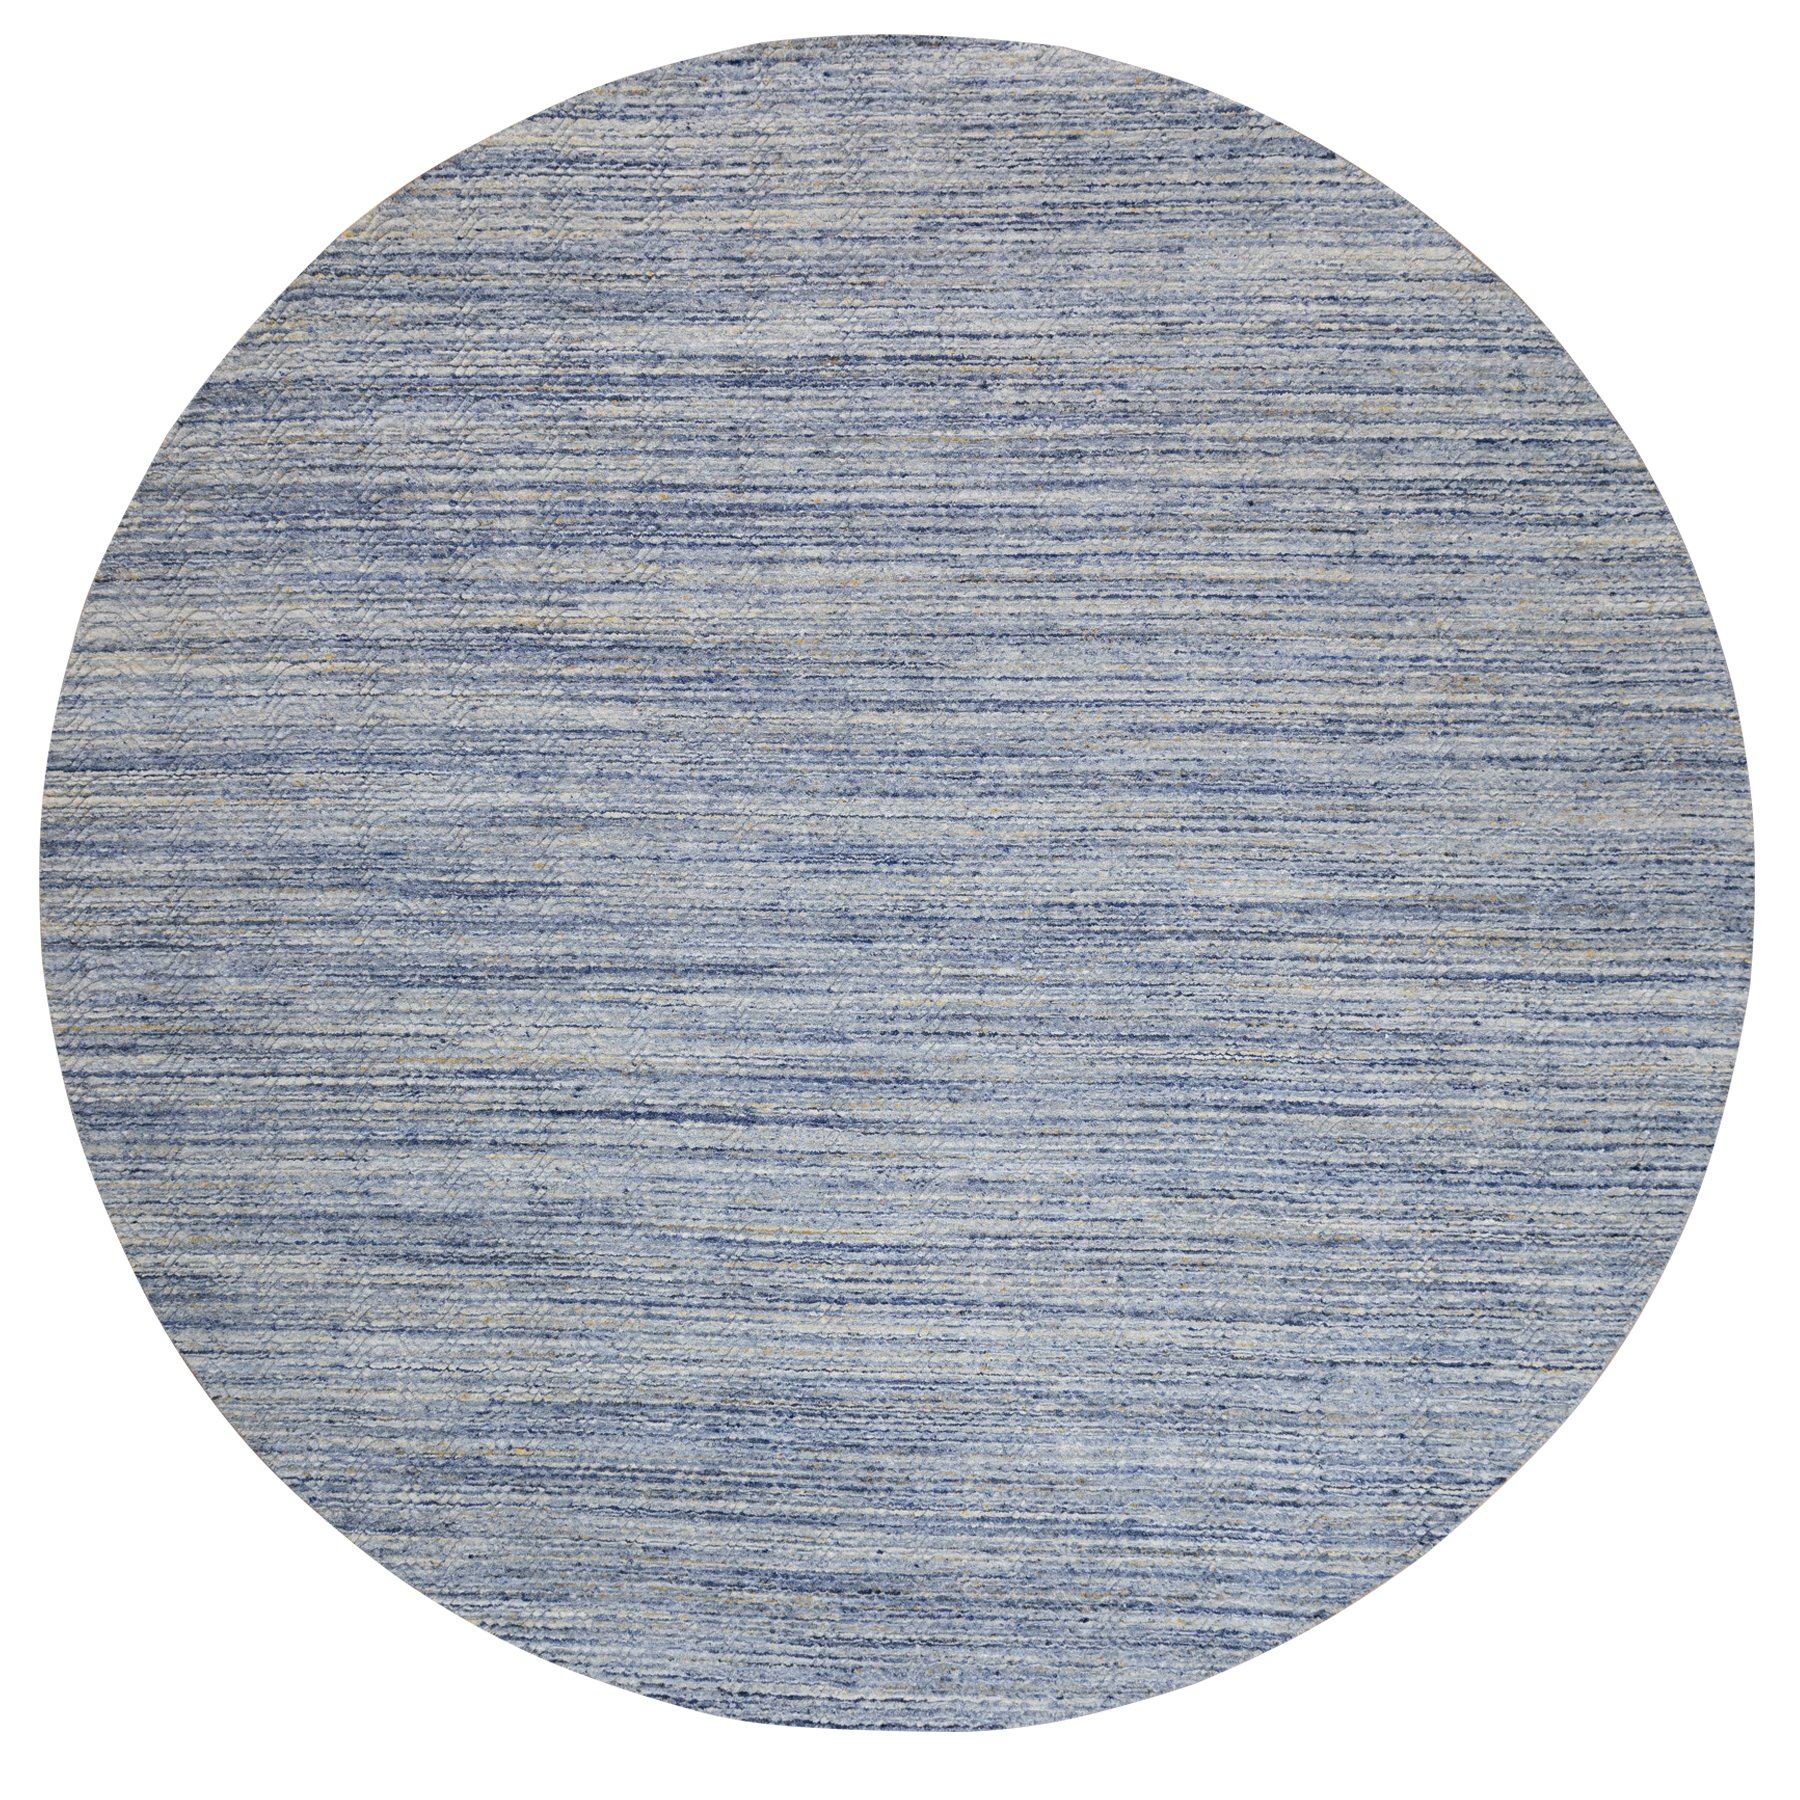 Modern & Contemporary Rugs LUV558891